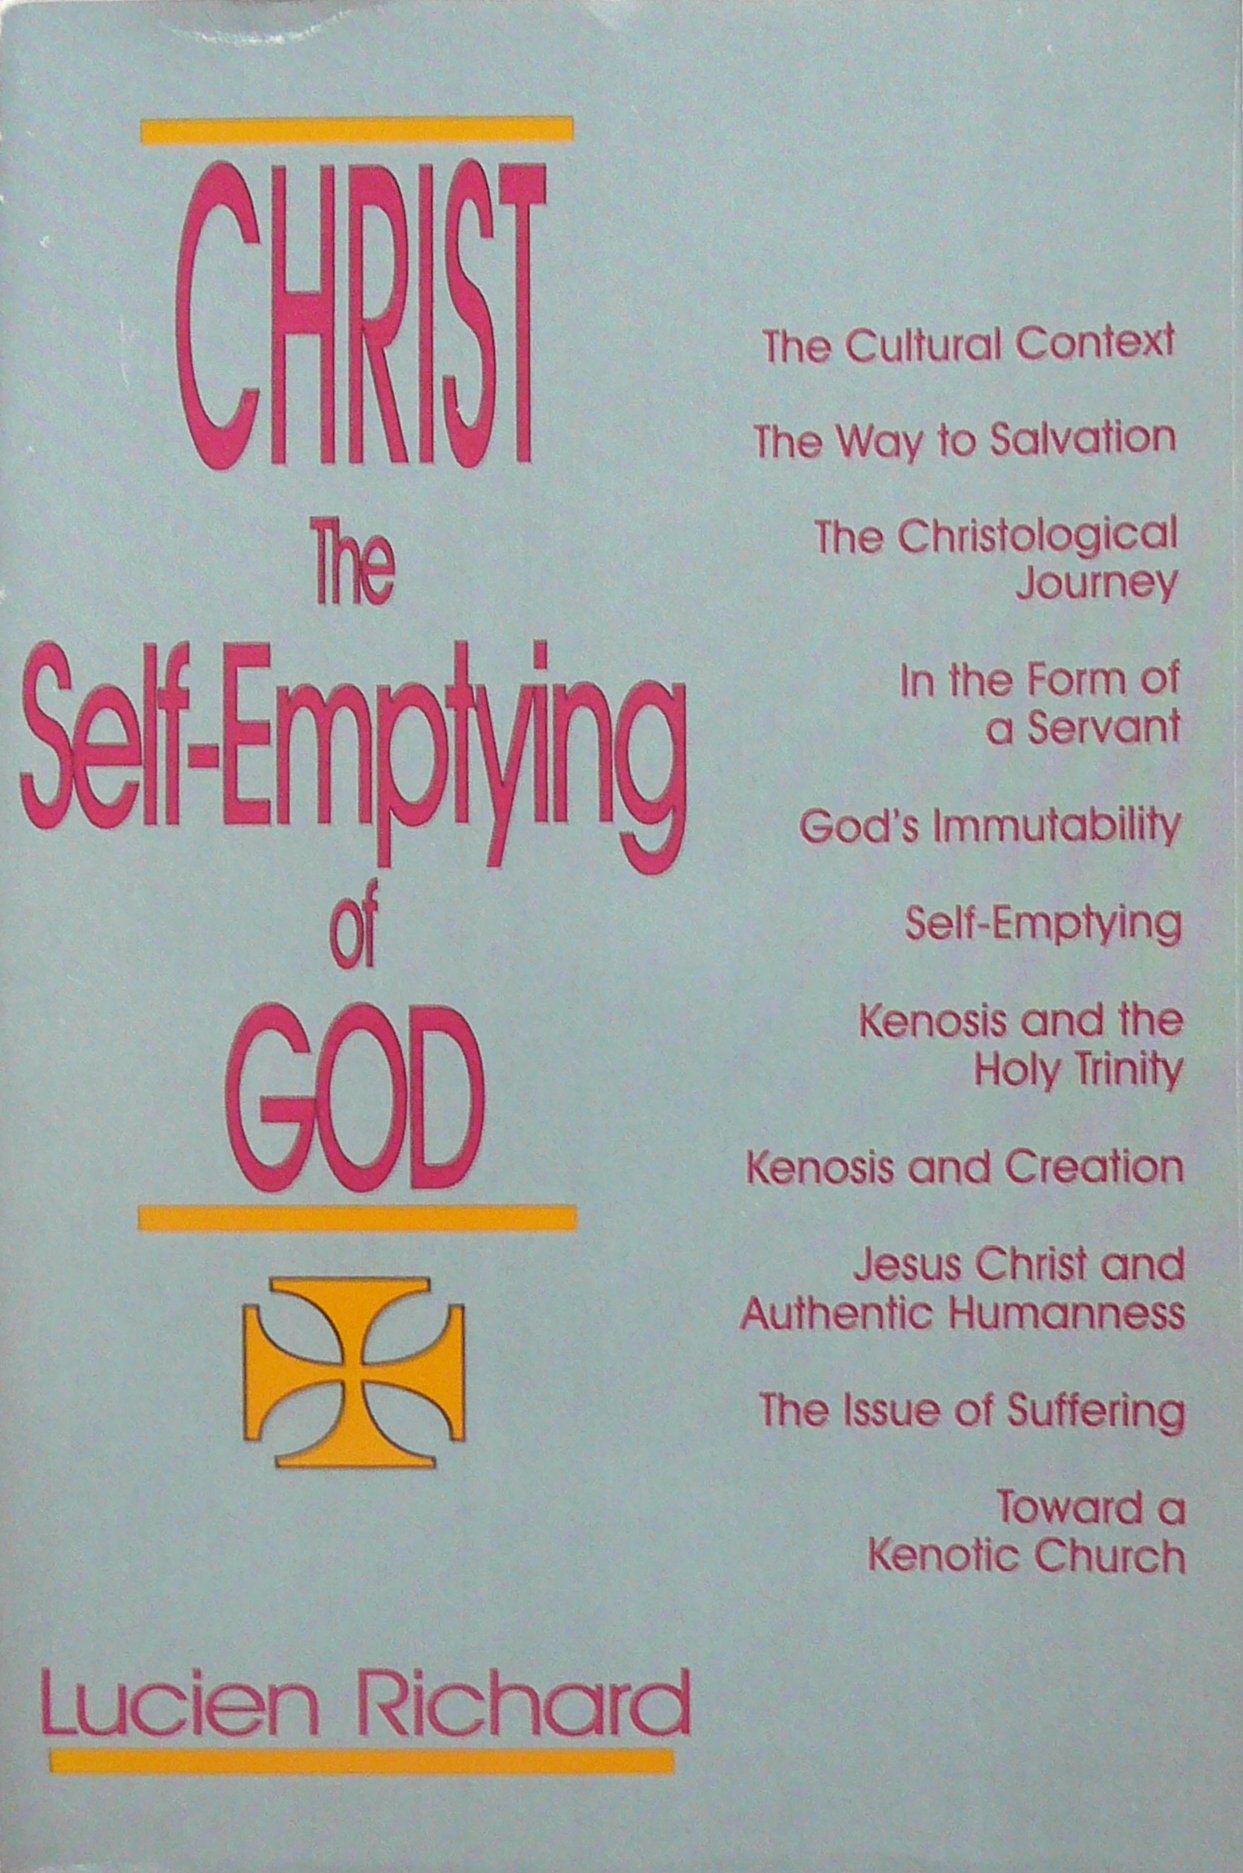 Christ: The Self-Emptying of God